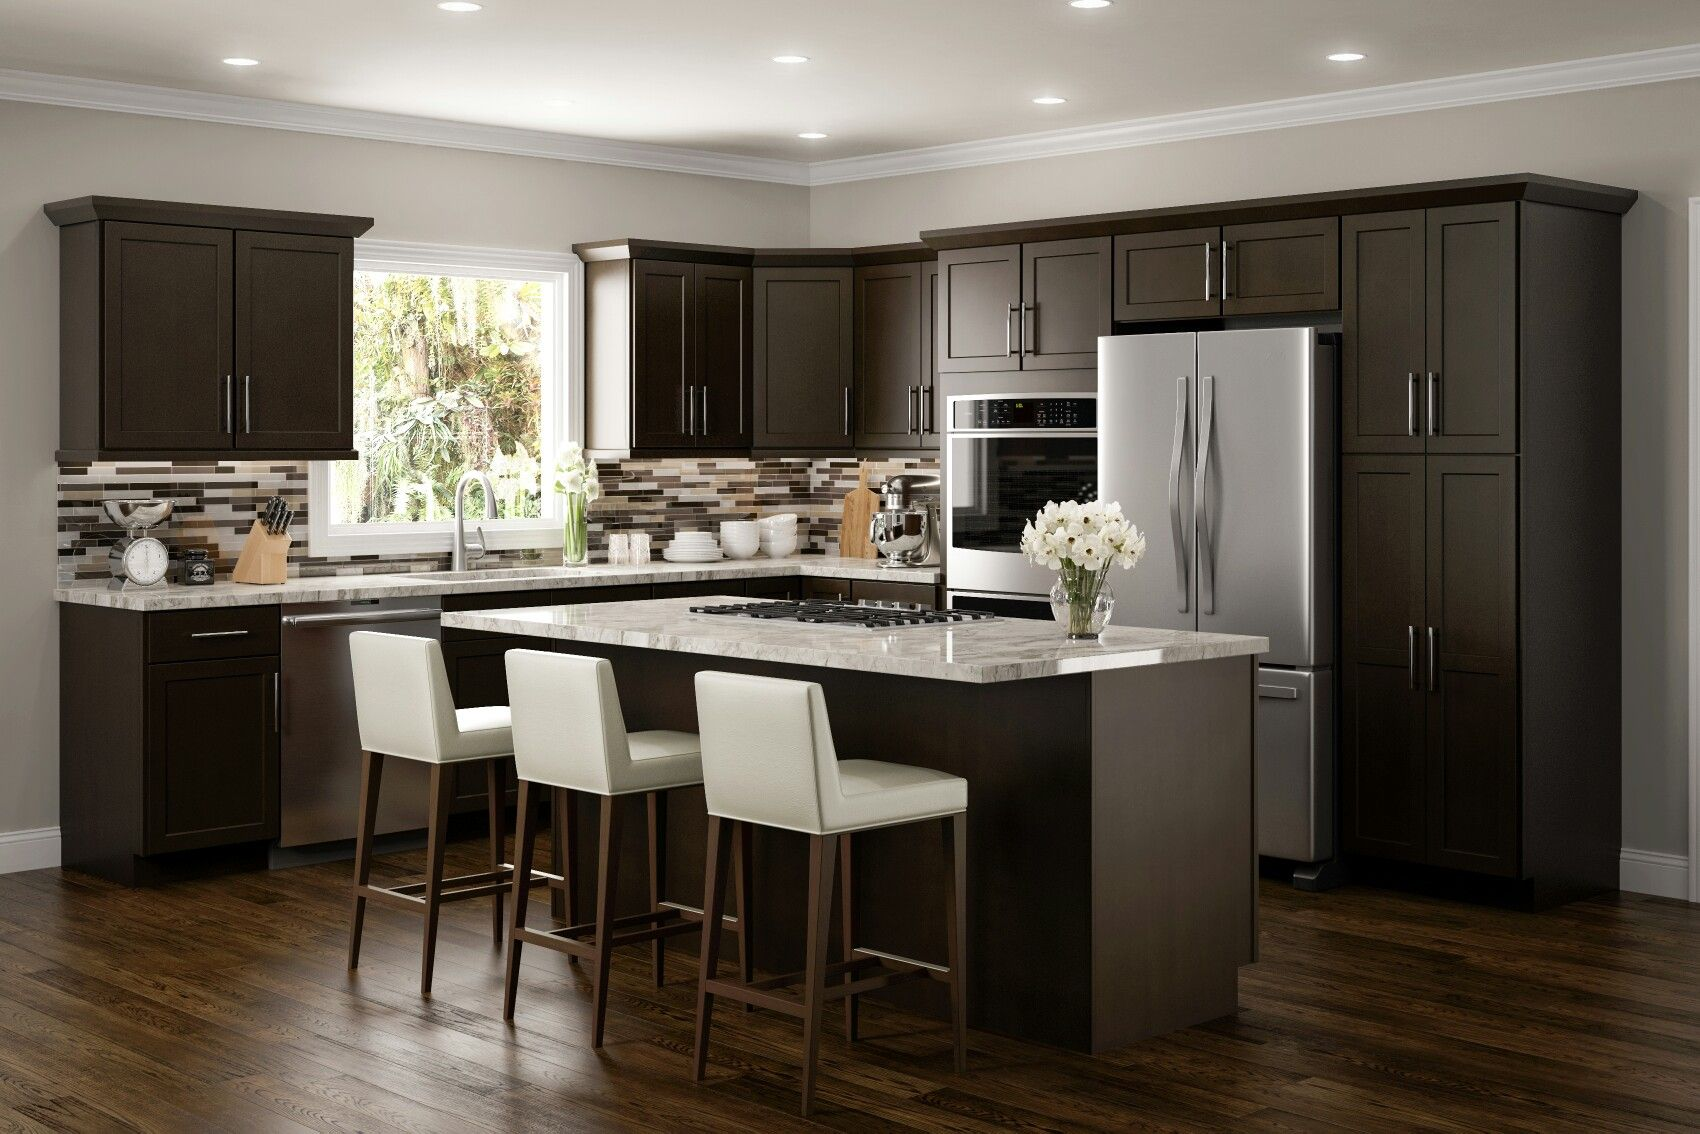 Pin By Carolina Cabinetry And Design On Jsi Cabinetry Espresso Kitchen Cabinets Classic Kitchen Cabinets Online Kitchen Cabinets